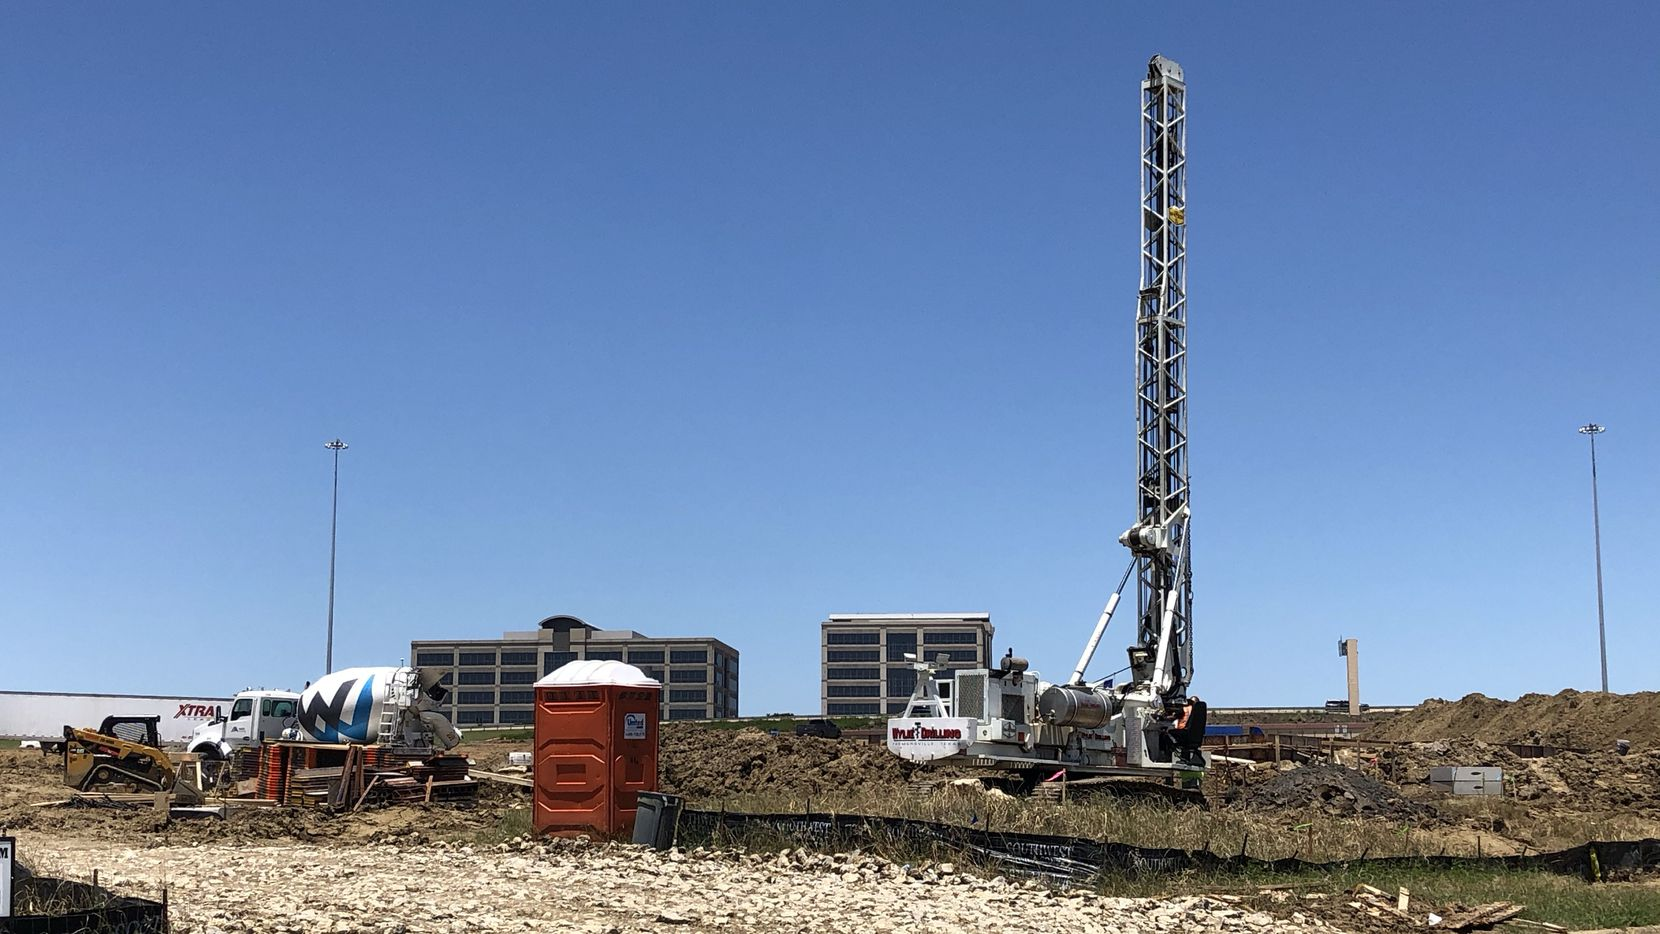 The new retail strip is being built at at Carpenter Freeway and State Highway 161 in Irving.